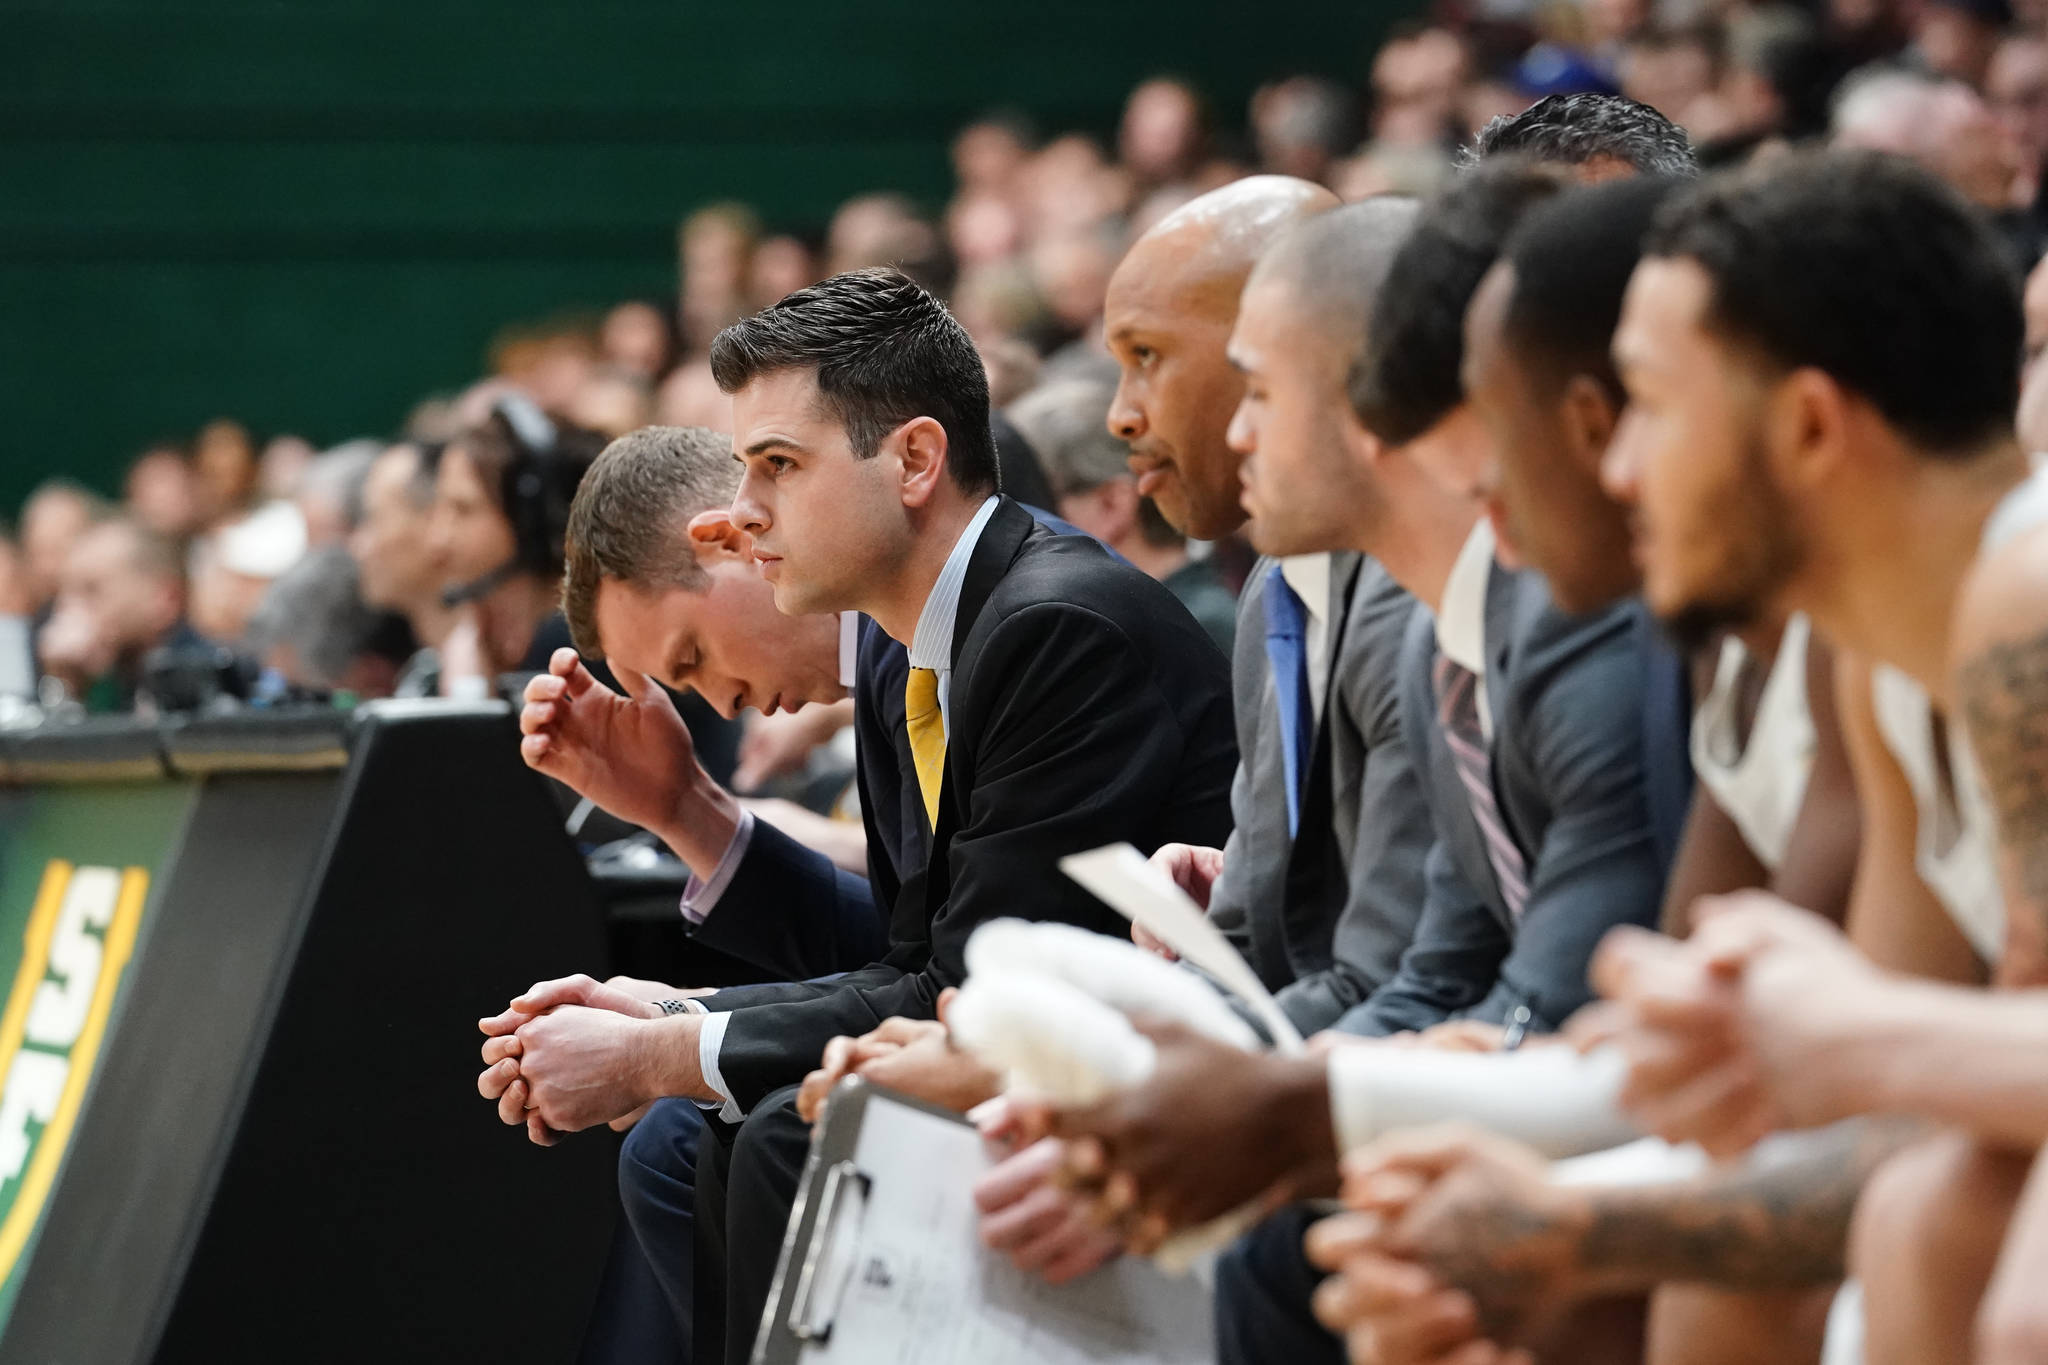 Todd Golden (center) sits on the bench during the University of San Francisco Dons' basketball game on jan. 12, 2019 against No. 5 Gonzaga at War Memorial Gym in San Francisco, Calif. (Courtesy / Chris M. Leung / USF Dons Athletics)